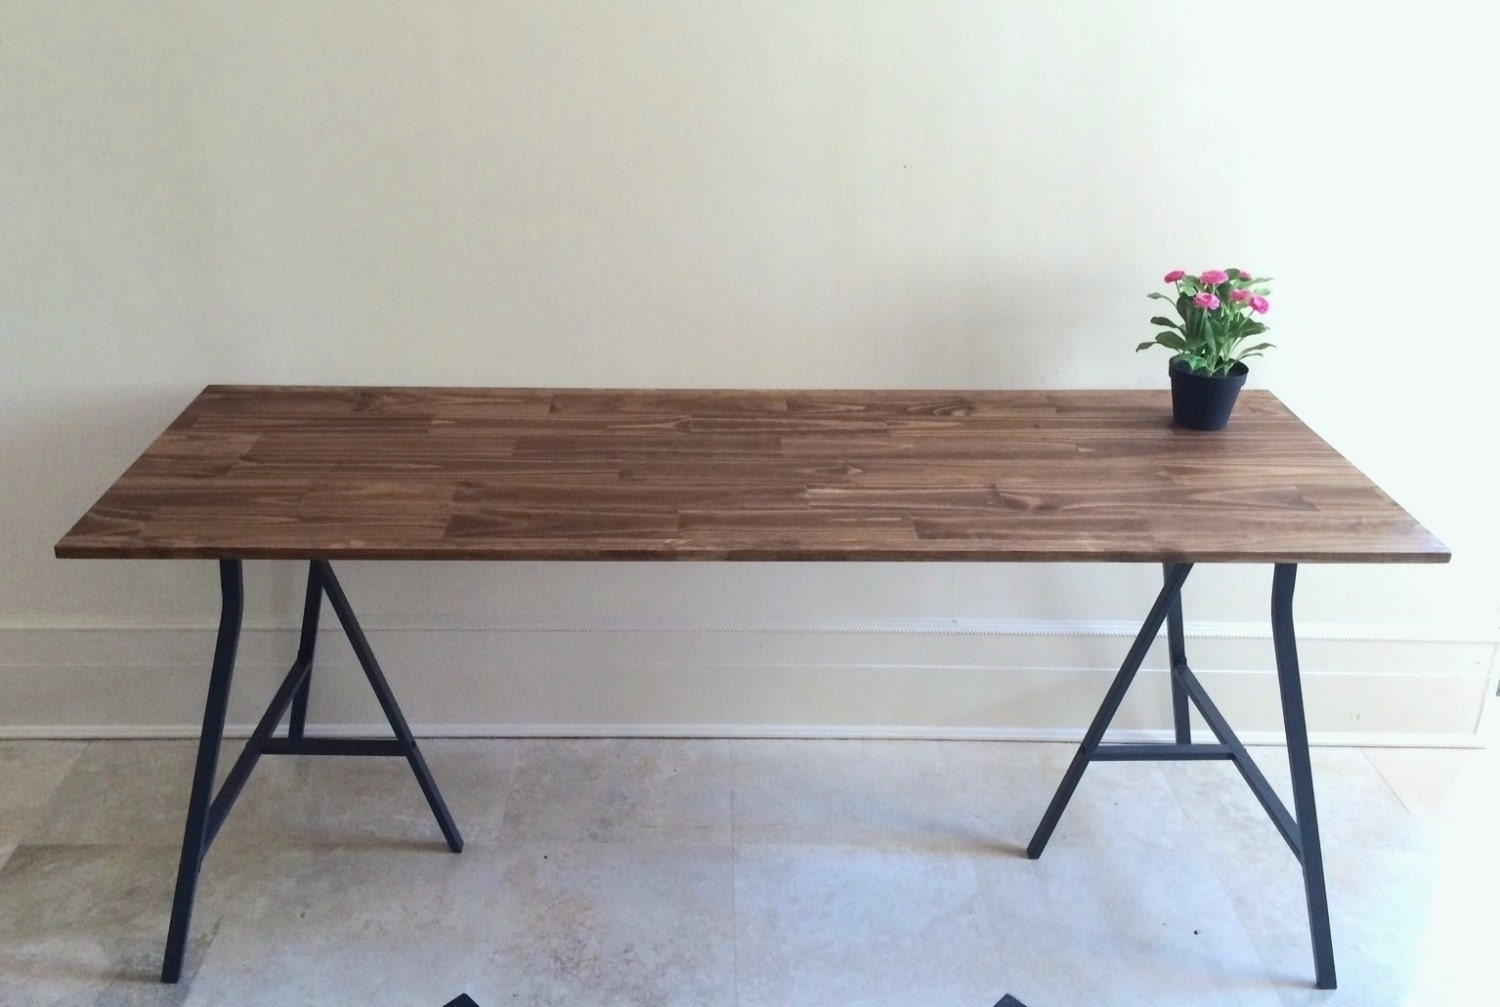 Narrow long dining table wood dining table rustic by goldenrulenyc - Long skinny dining table ...